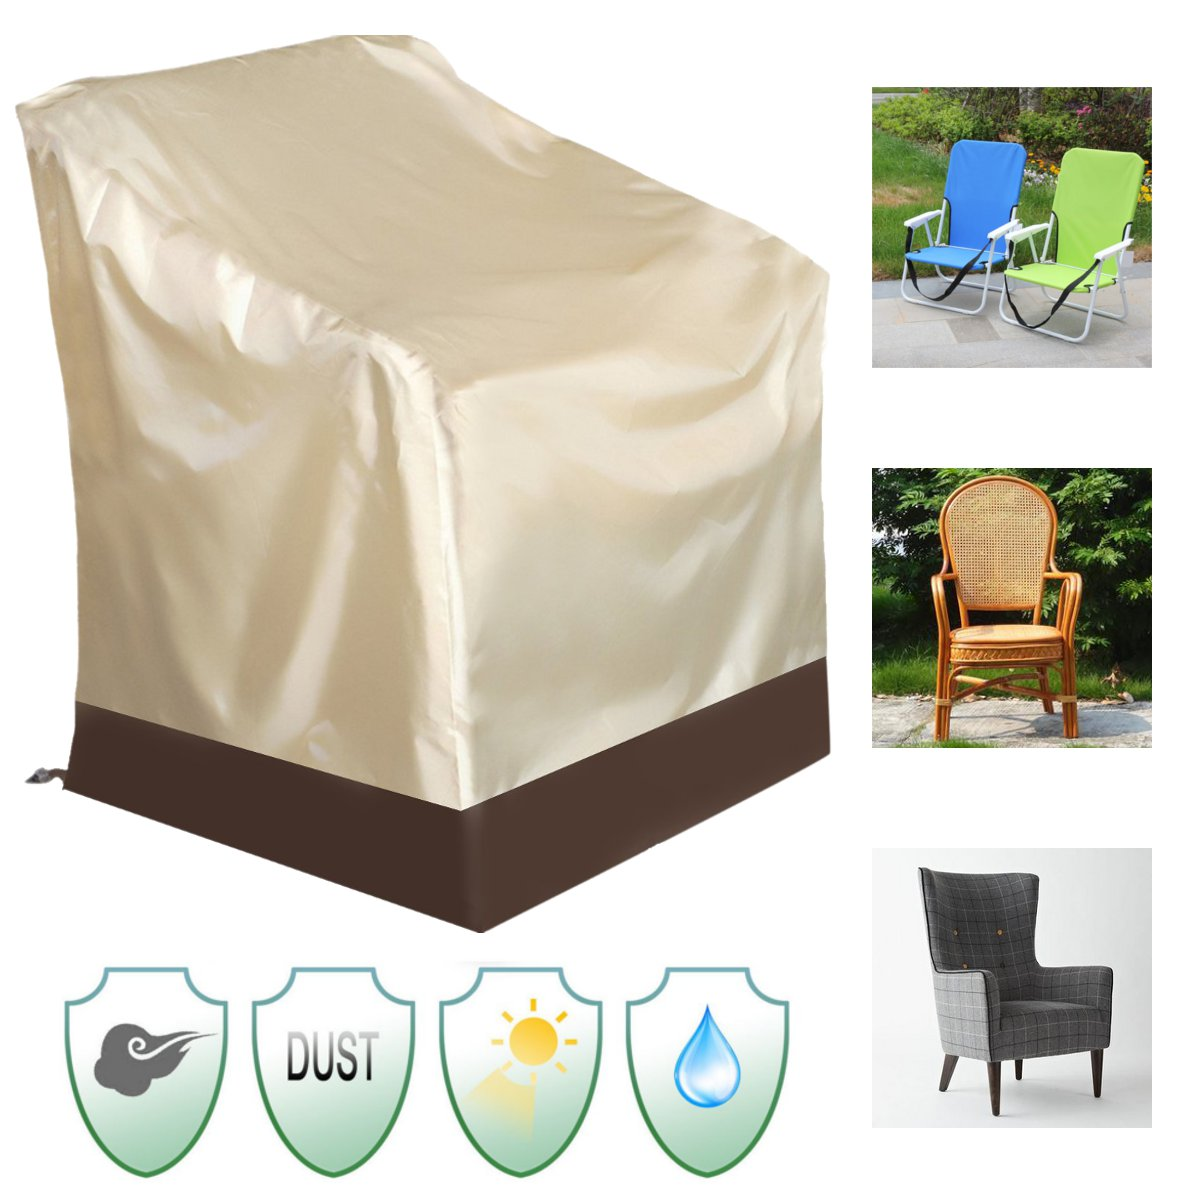 Meigar High Back Chair Covers Outdoor Yard Furniture Protection Accessories Veranda Patio Rocking Chair Cover - Durable and Water Resistant Patio Set Cover